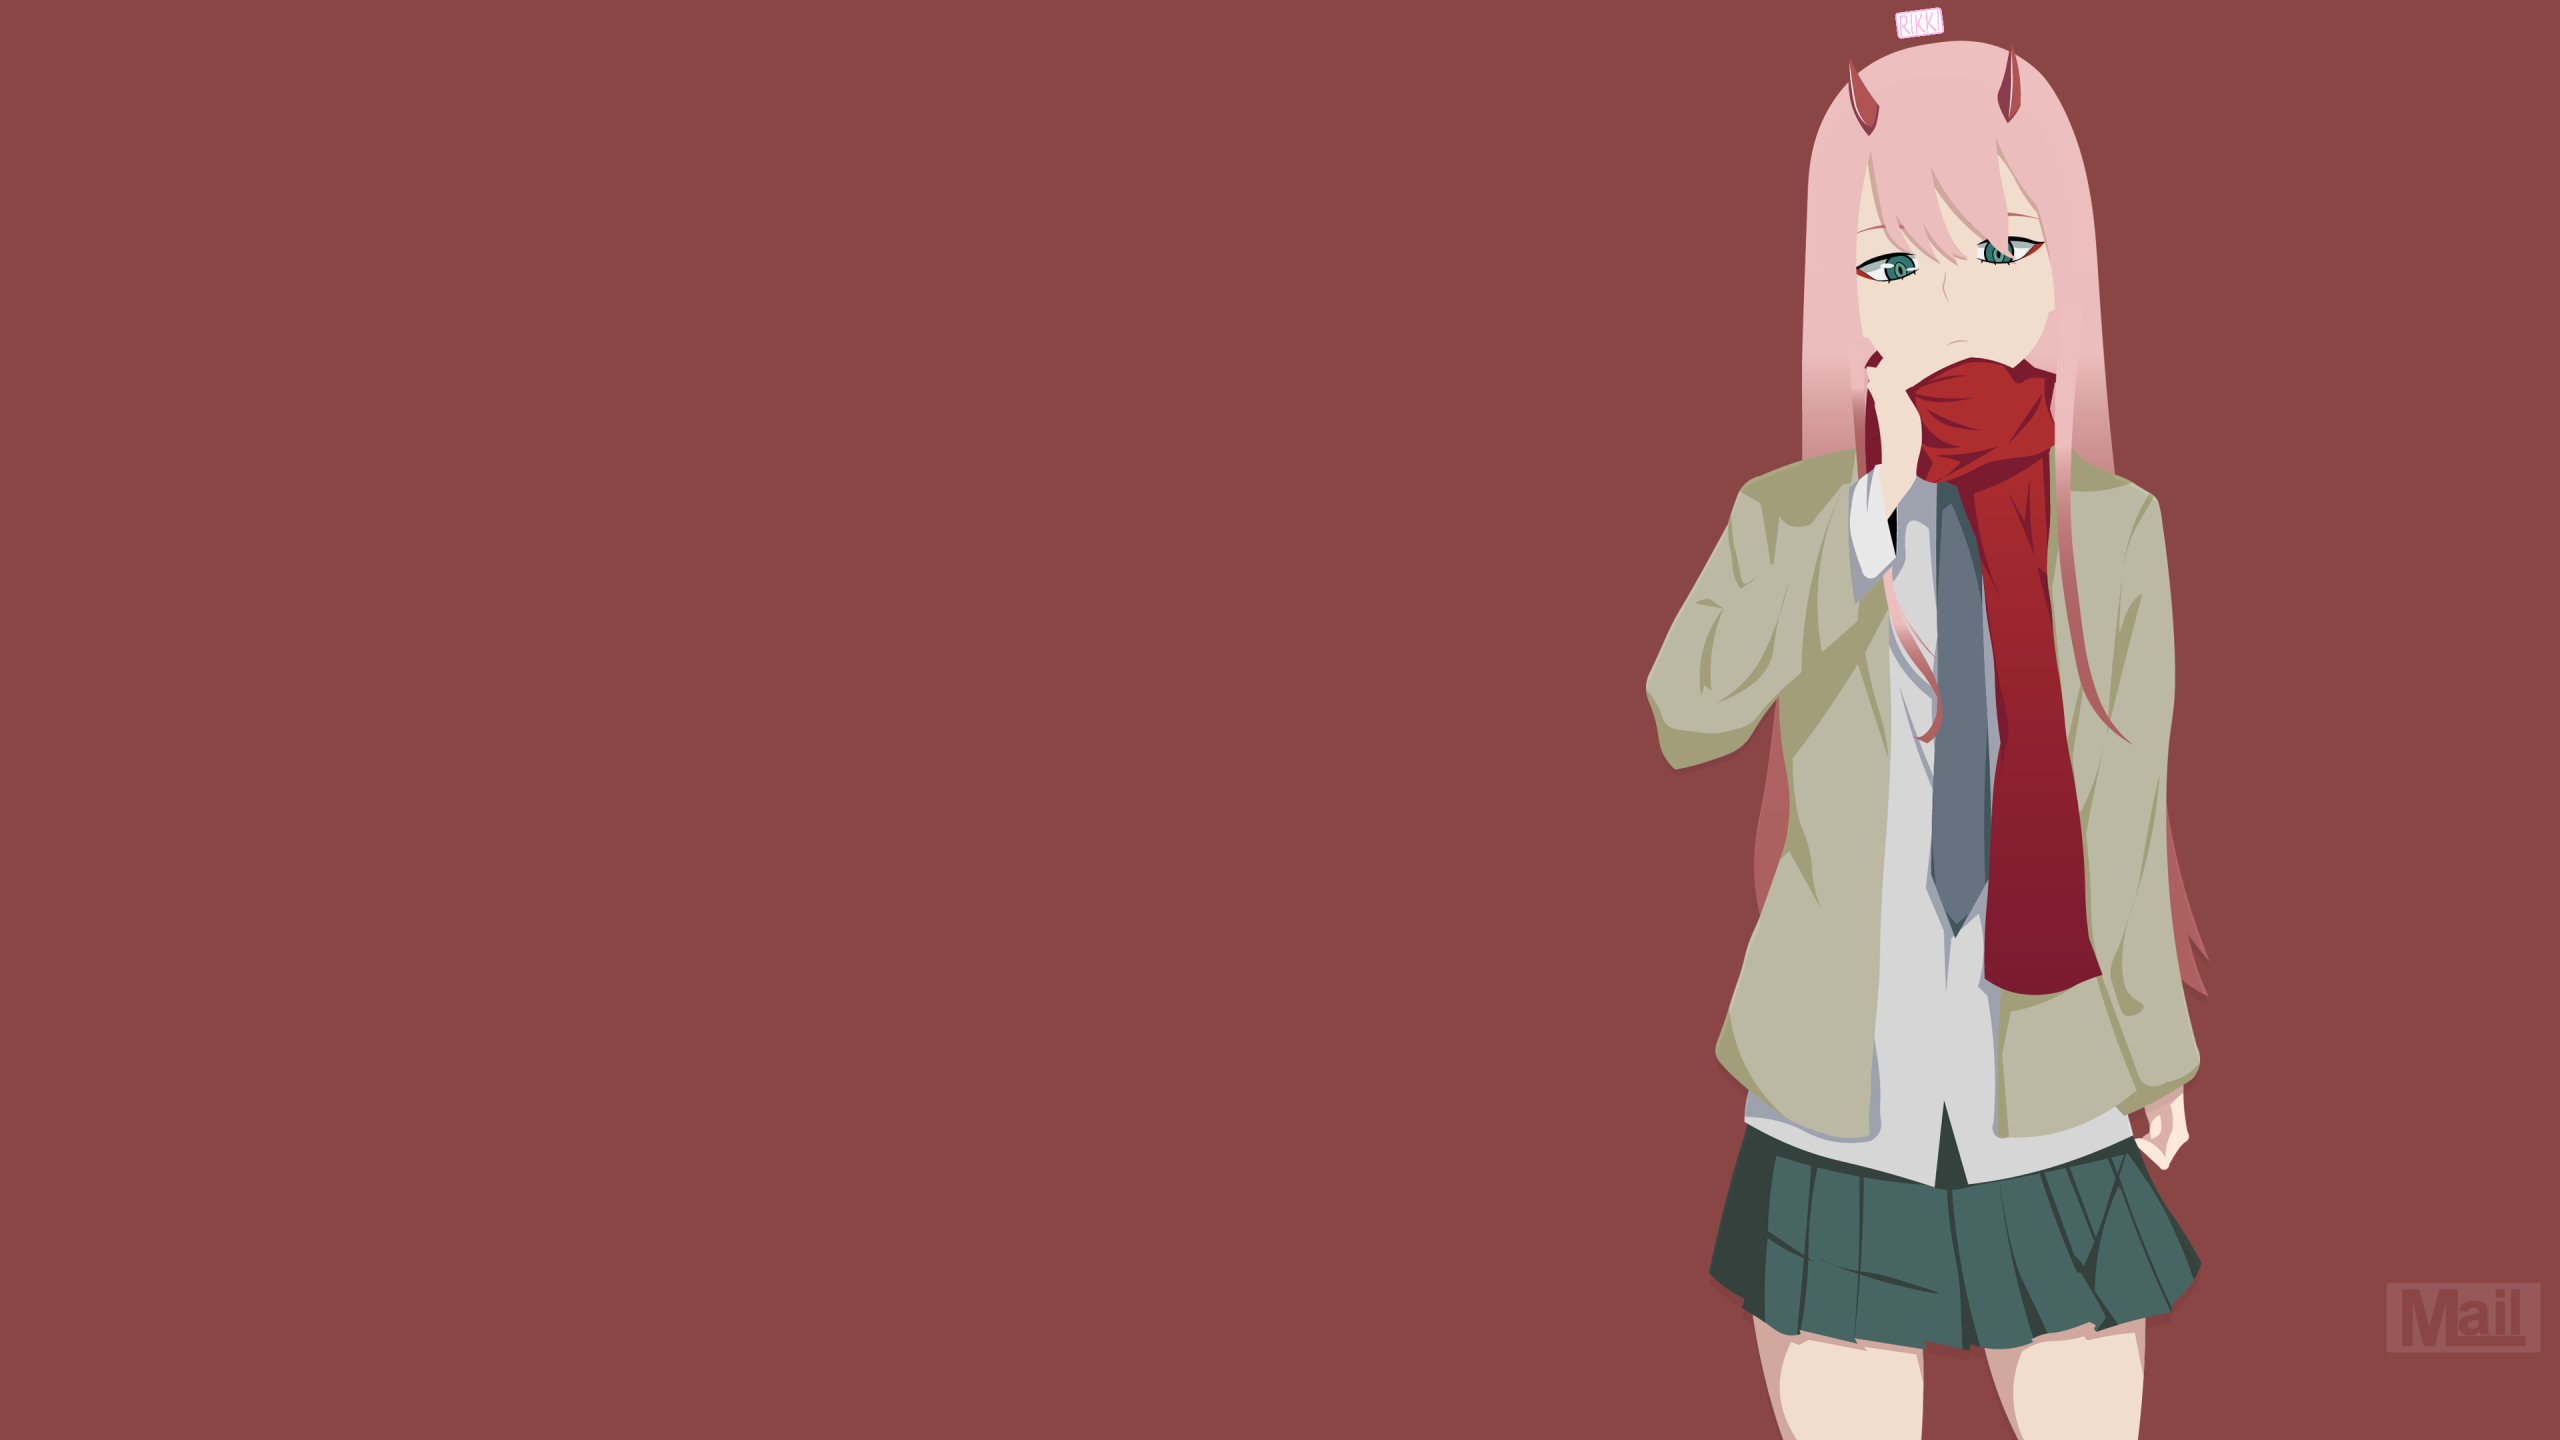 2560x1440 Zero Two Minimalist 1440p Resolution Wallpaper Hd Anime